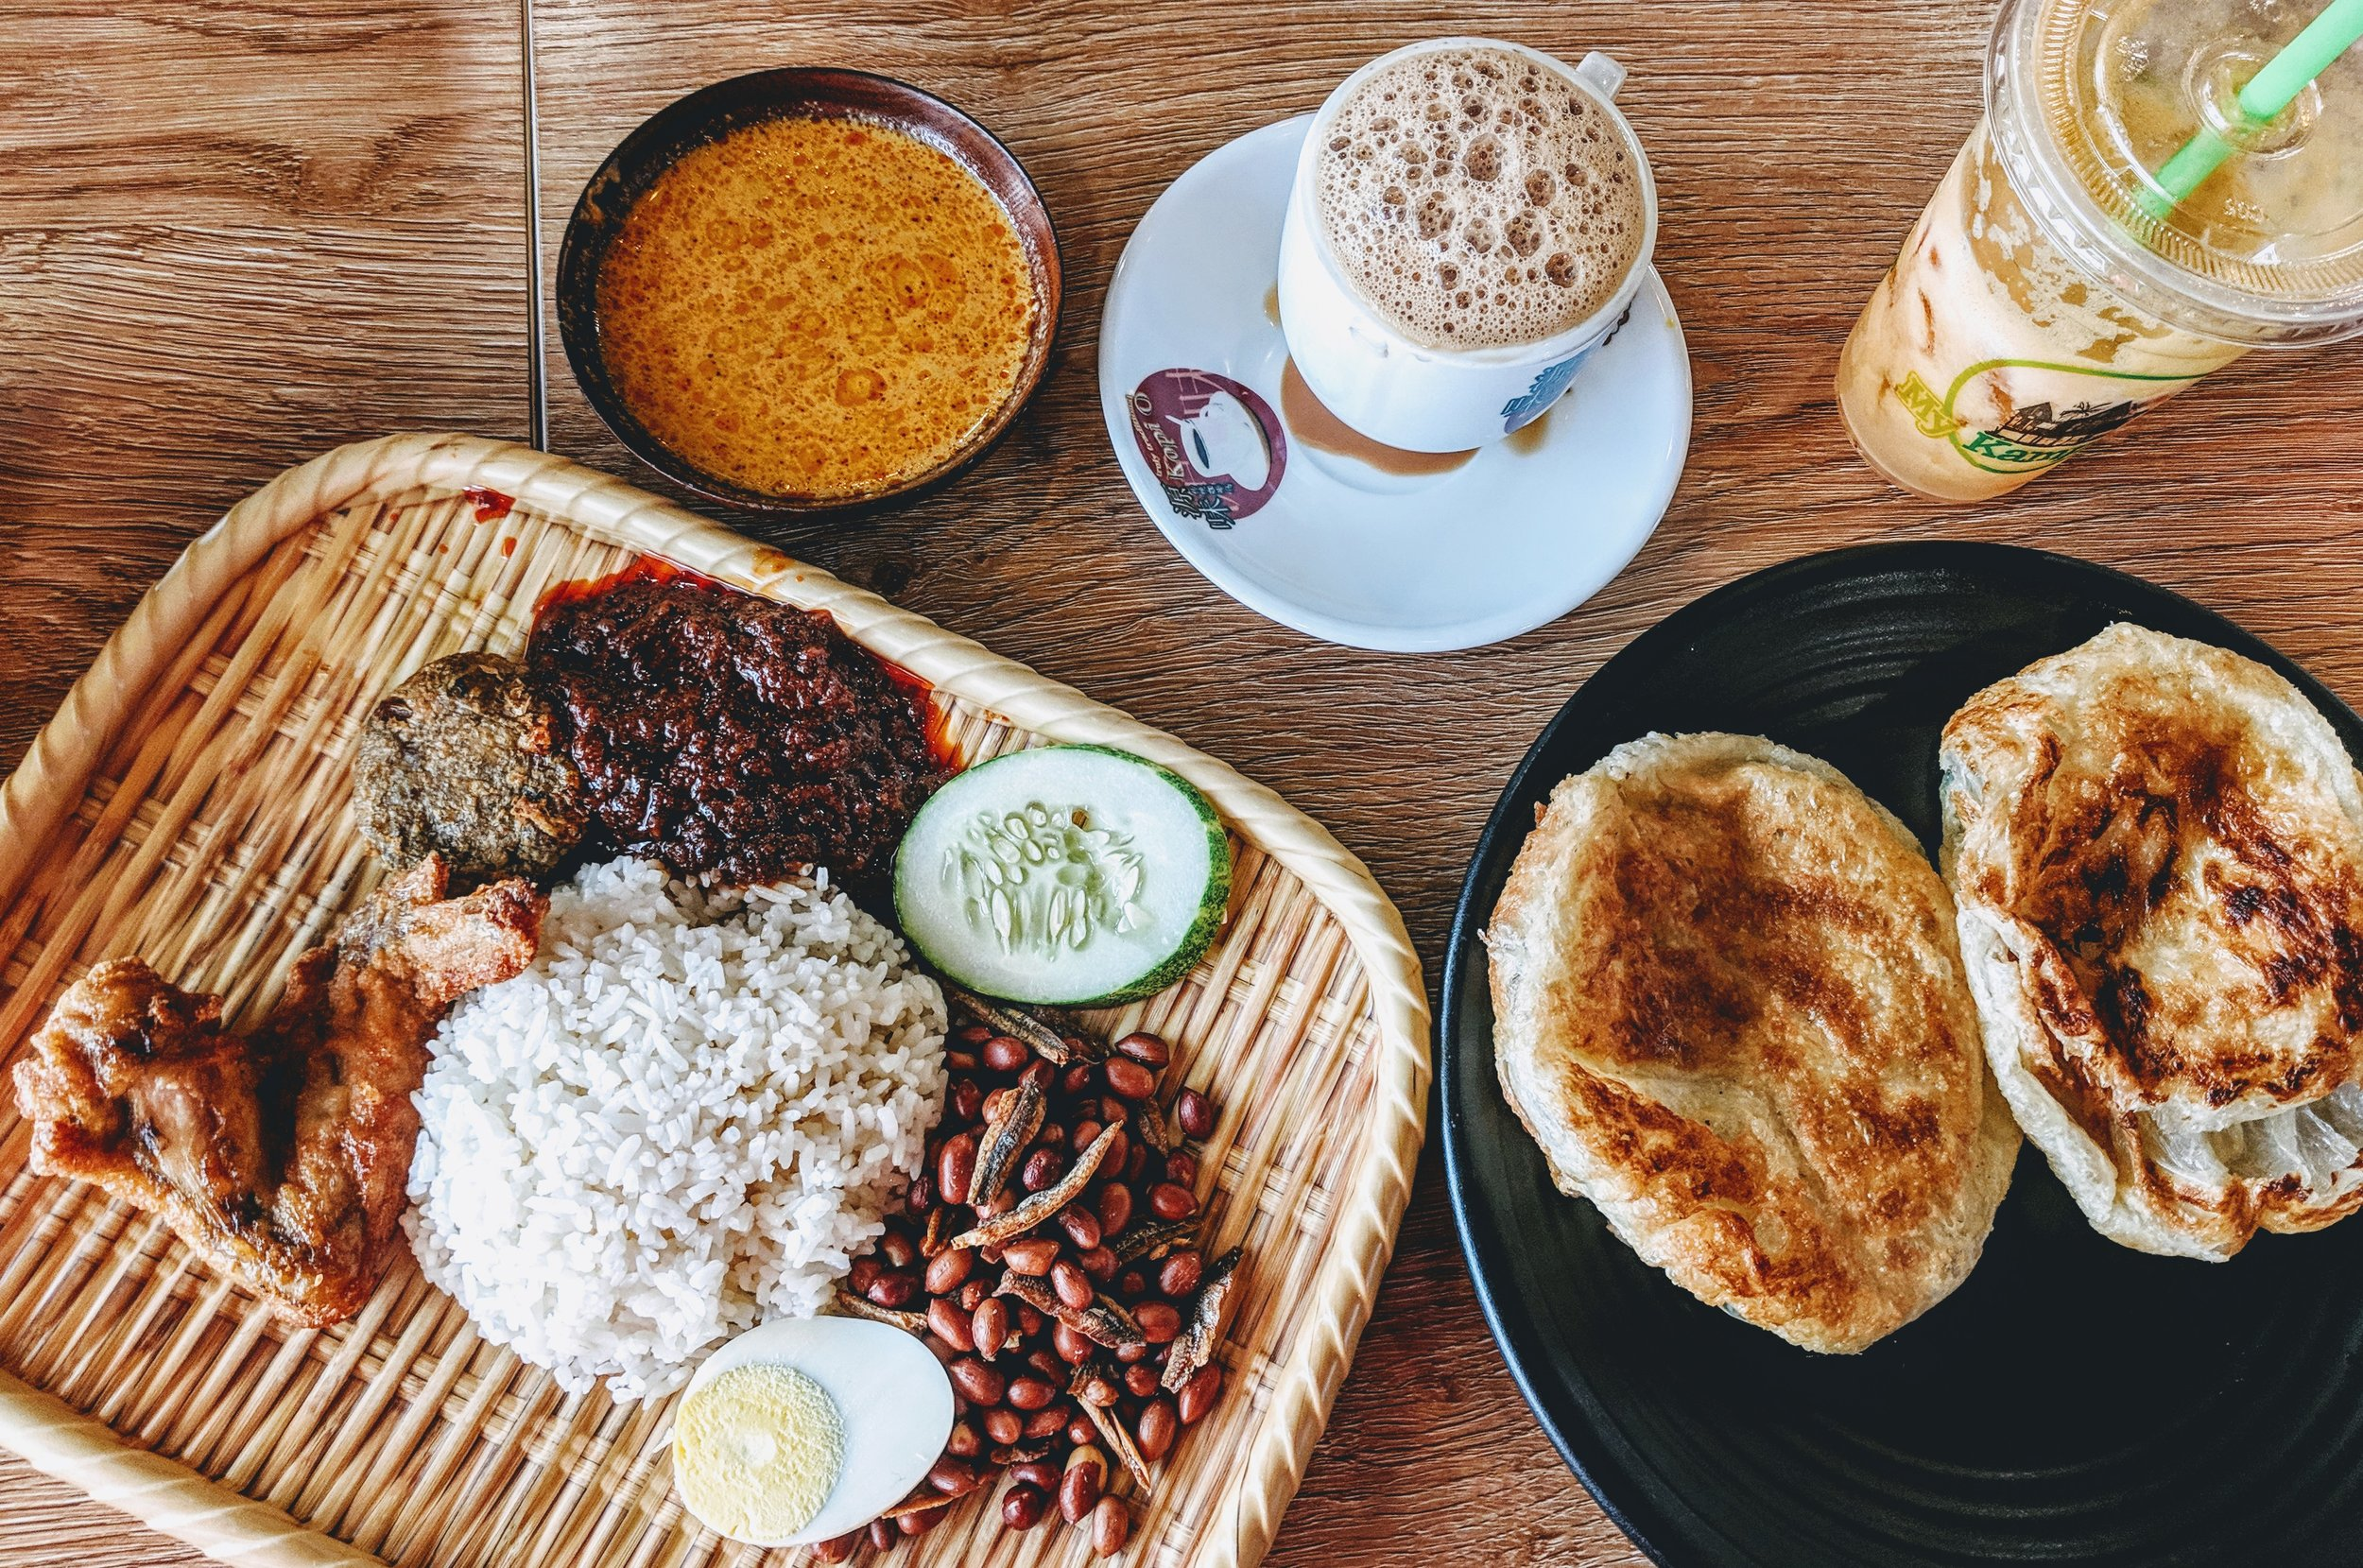 This is a typical and oh so delightful meal in Singapore and Malaysia. Left: Nasi lemak (coconut rice with chicken or fish, egg, peanuts, anchovies and spicy sambal chilli). Right: Roti prata (flattened and crispy bread). Top: Milk teas. From this picture, can you guess what I eat and what I don't eat?